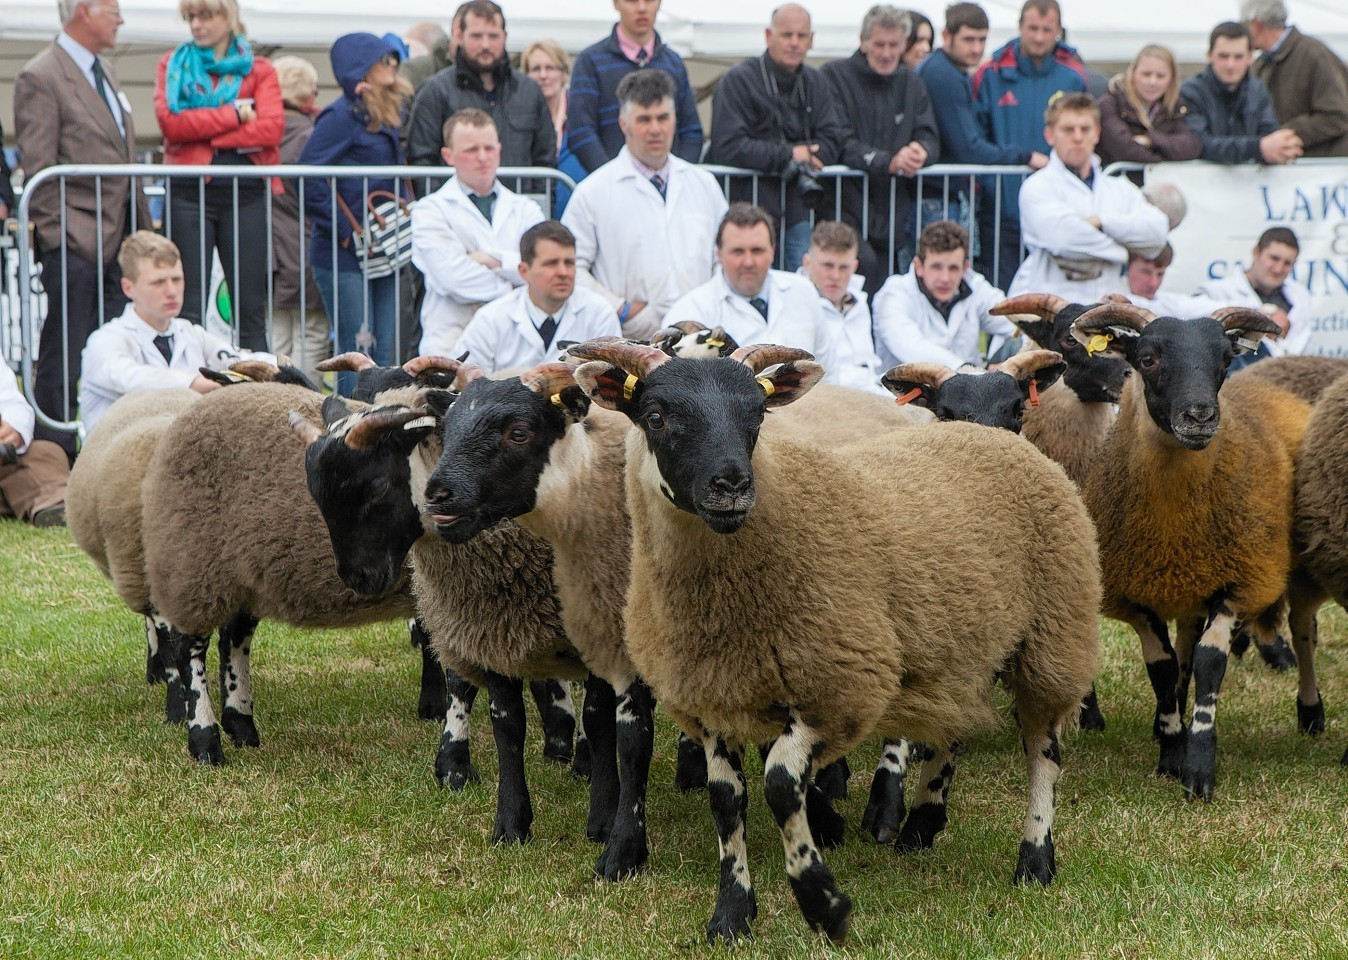 Sheep being shown at the Royal Highland Show